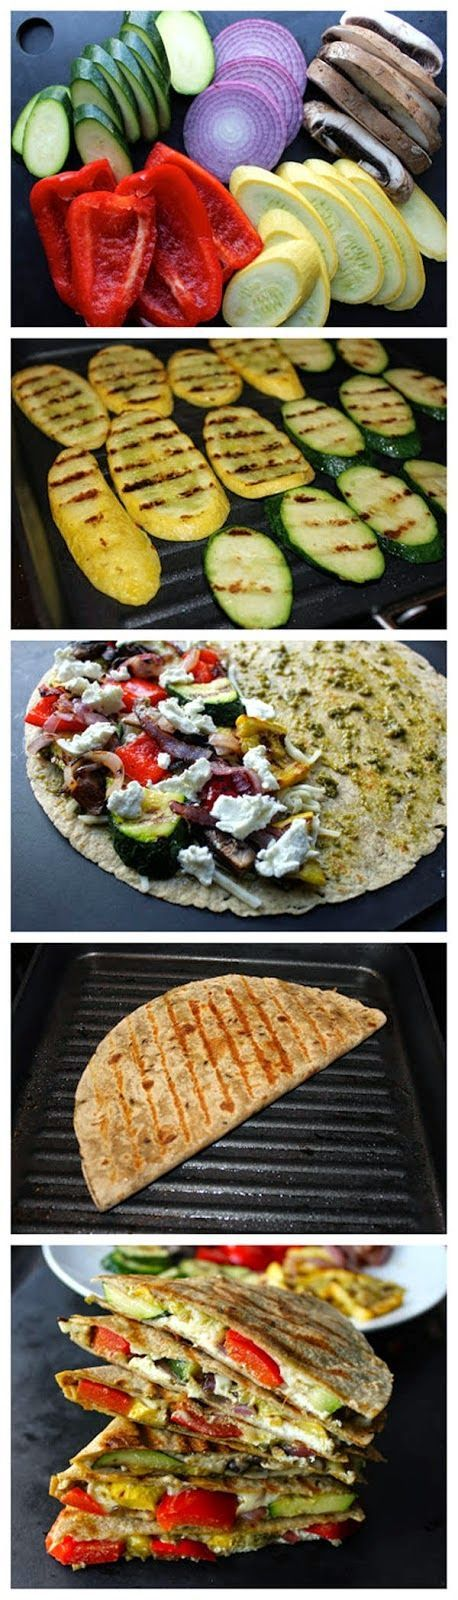 Grilled Vegetable Quesadillas with Goat Cheese and Pesto. | Nosh-up